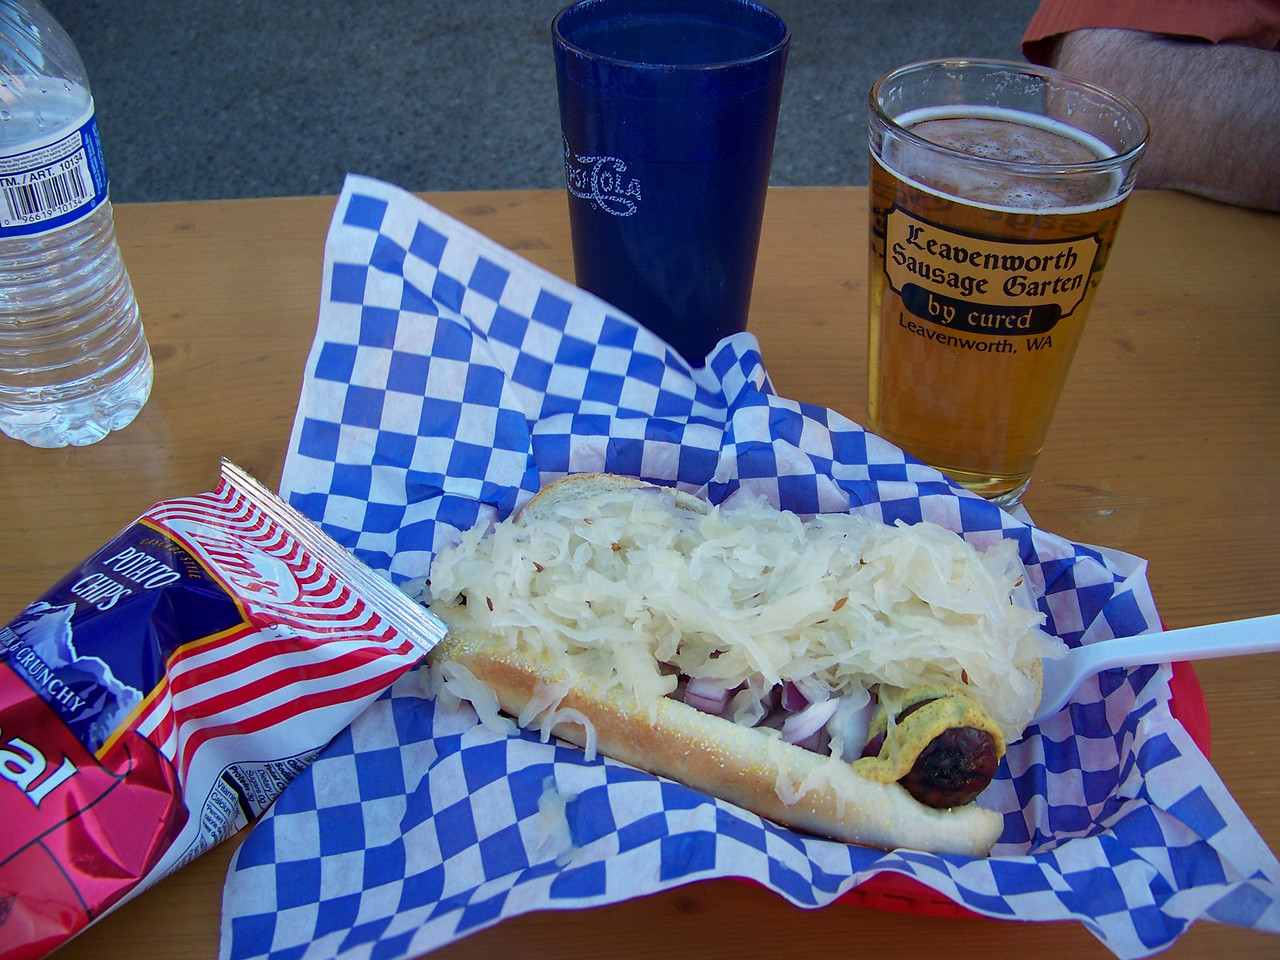 I can't remember now which sausage I chose at the Sausage Garten (kielbasa?), but it was very good!  They had a topping bar where I added my own spicy mustard, onions, and hot sauerkraut.<br /> [Leavenworth, WA]